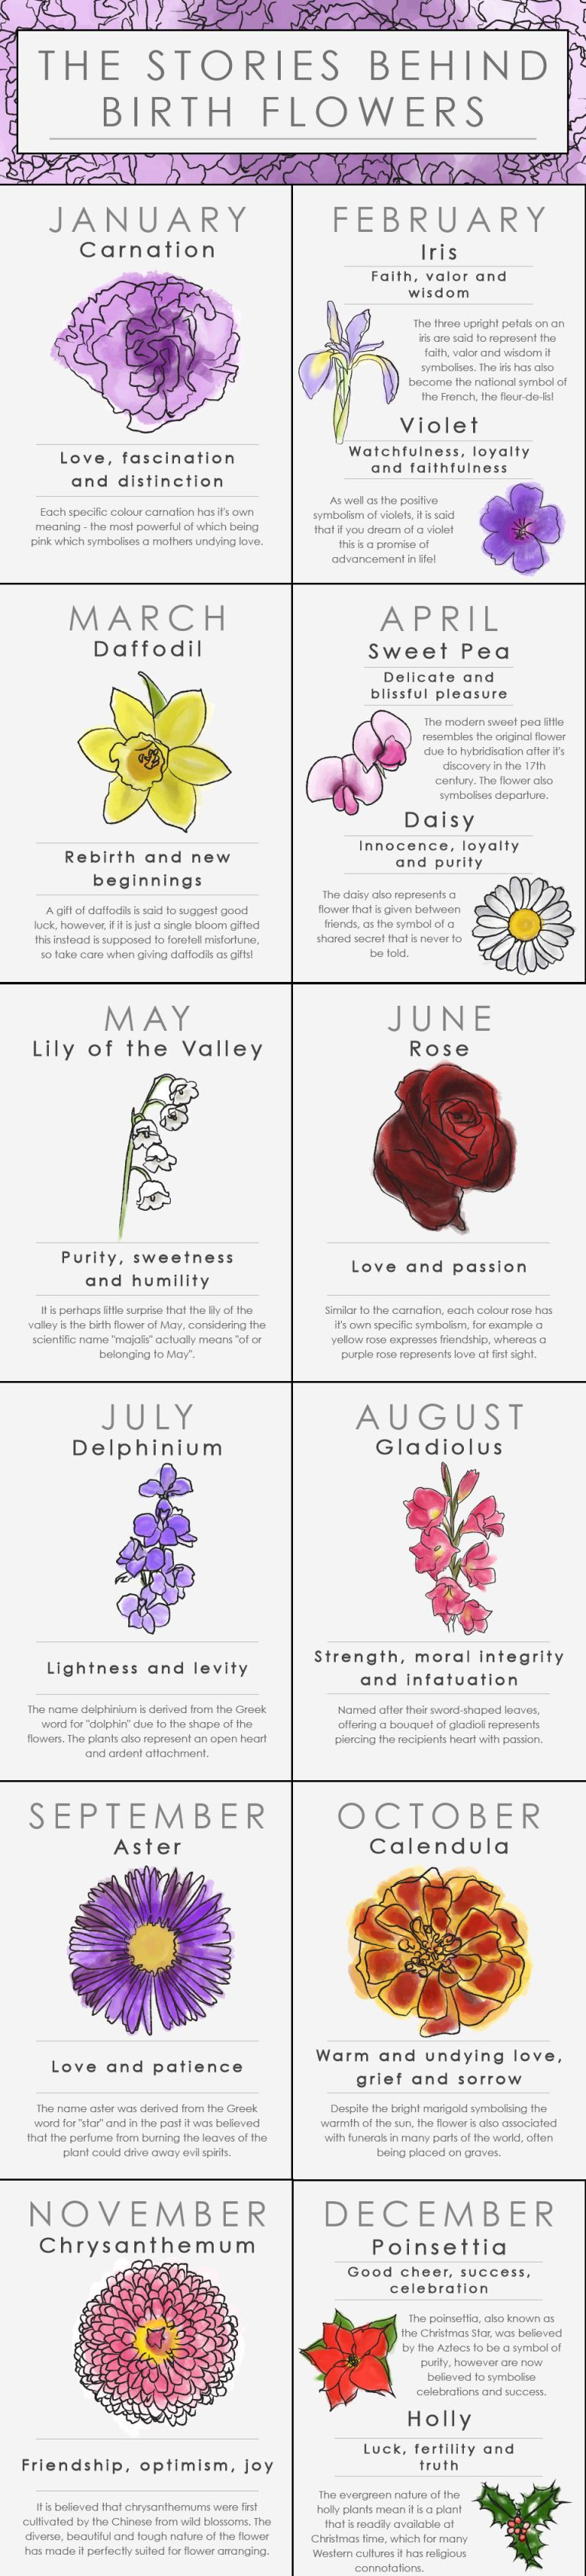 What your birth flower says about your personality garden ideas your birth flower is the bloom associated with the month you were born which holds a symbolic meaning a floral zodiac if you will izmirmasajfo